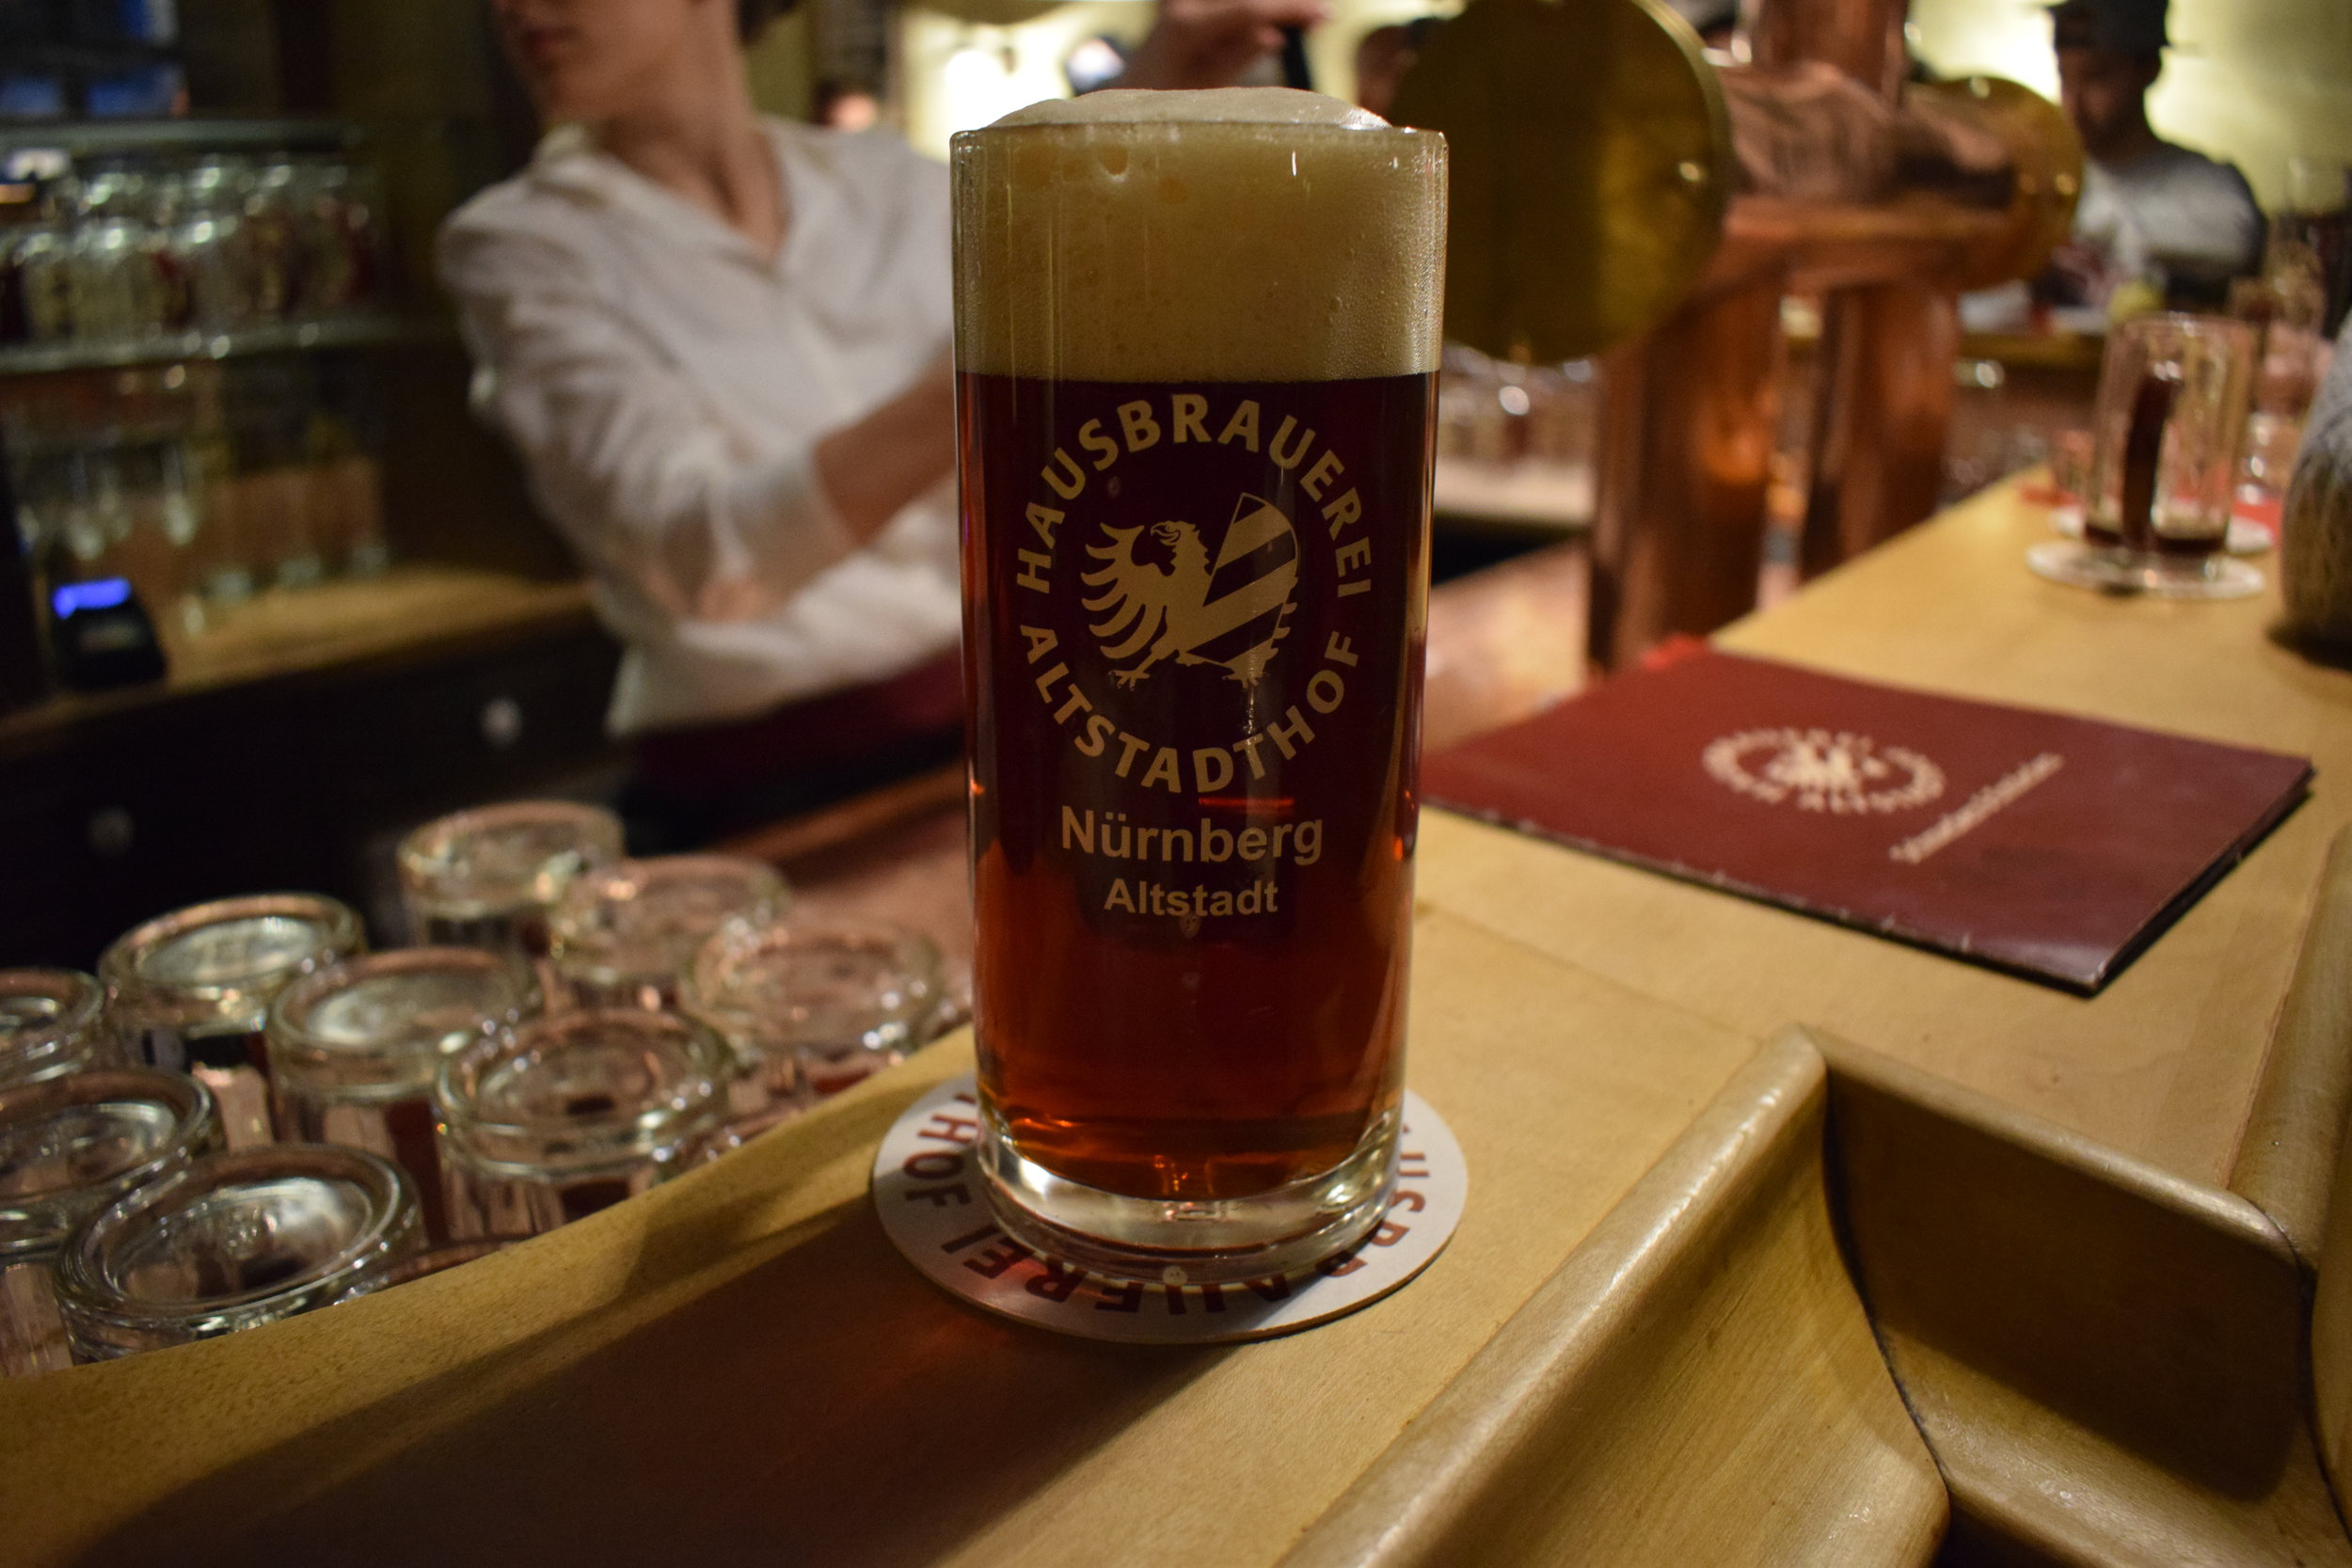 A half-litre of red beer from    Hausbrauerei Altstadhof   .